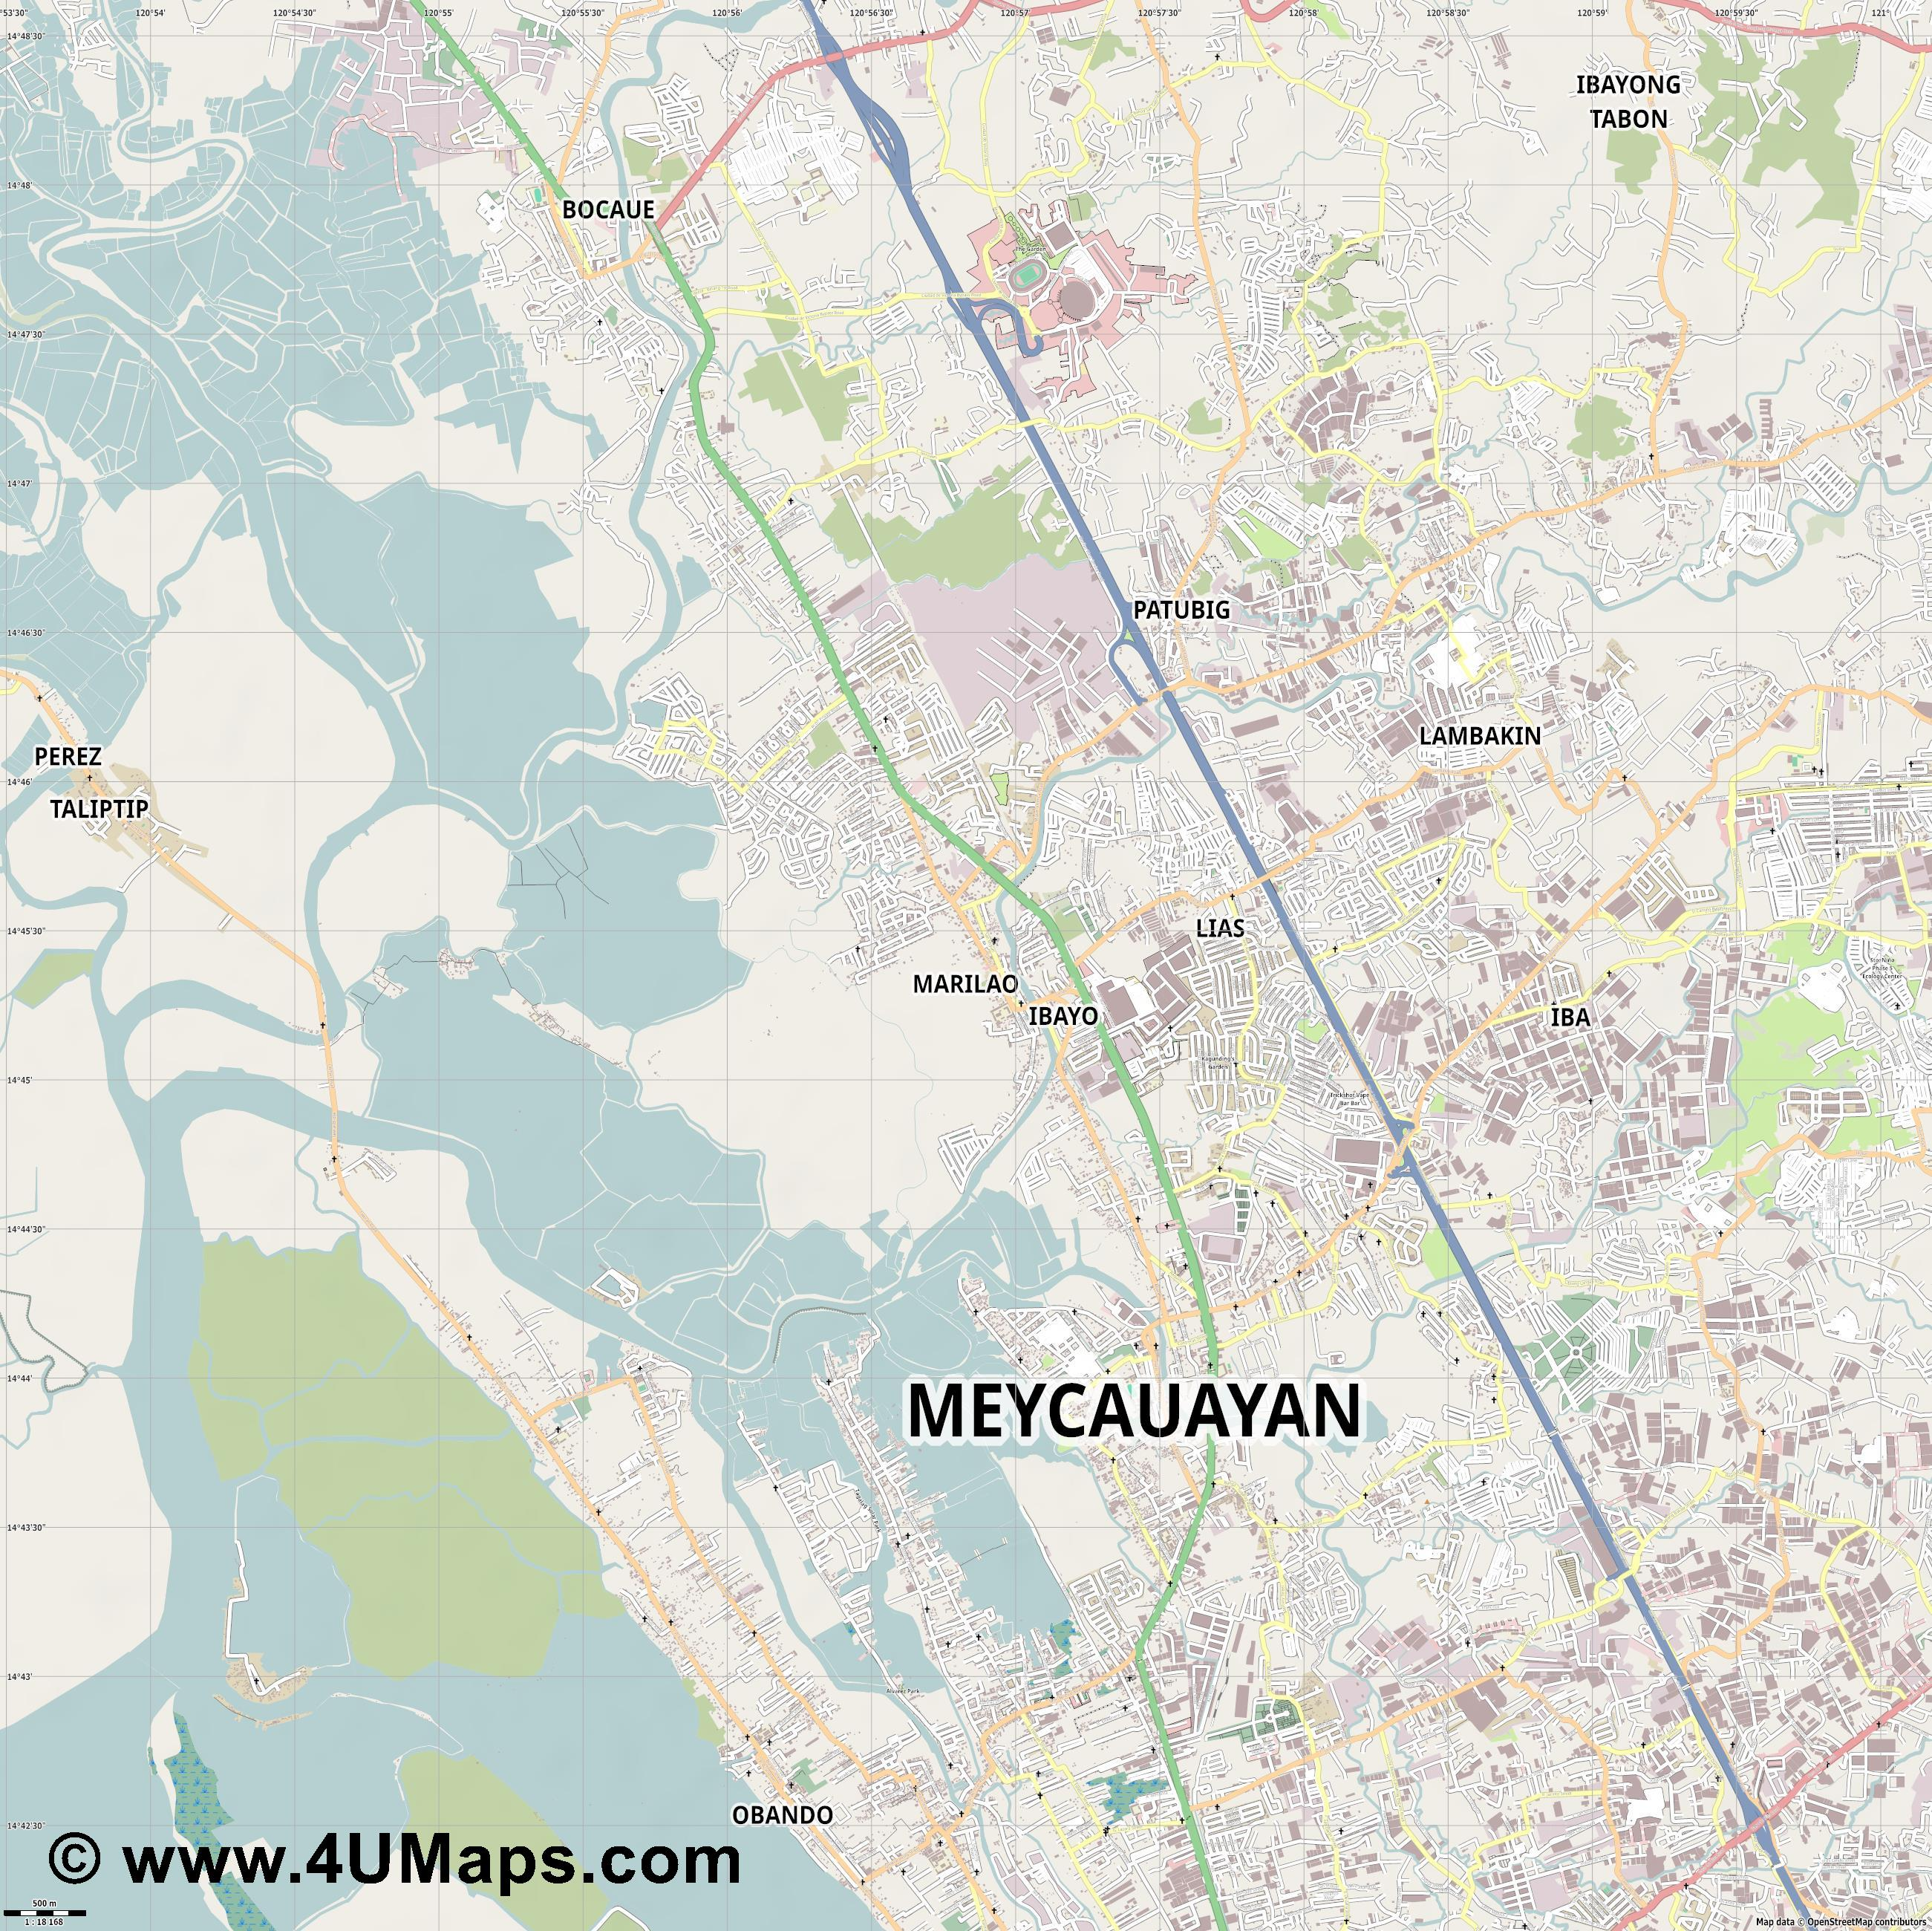 Marilao  jpg ultra high detail preview vector city map